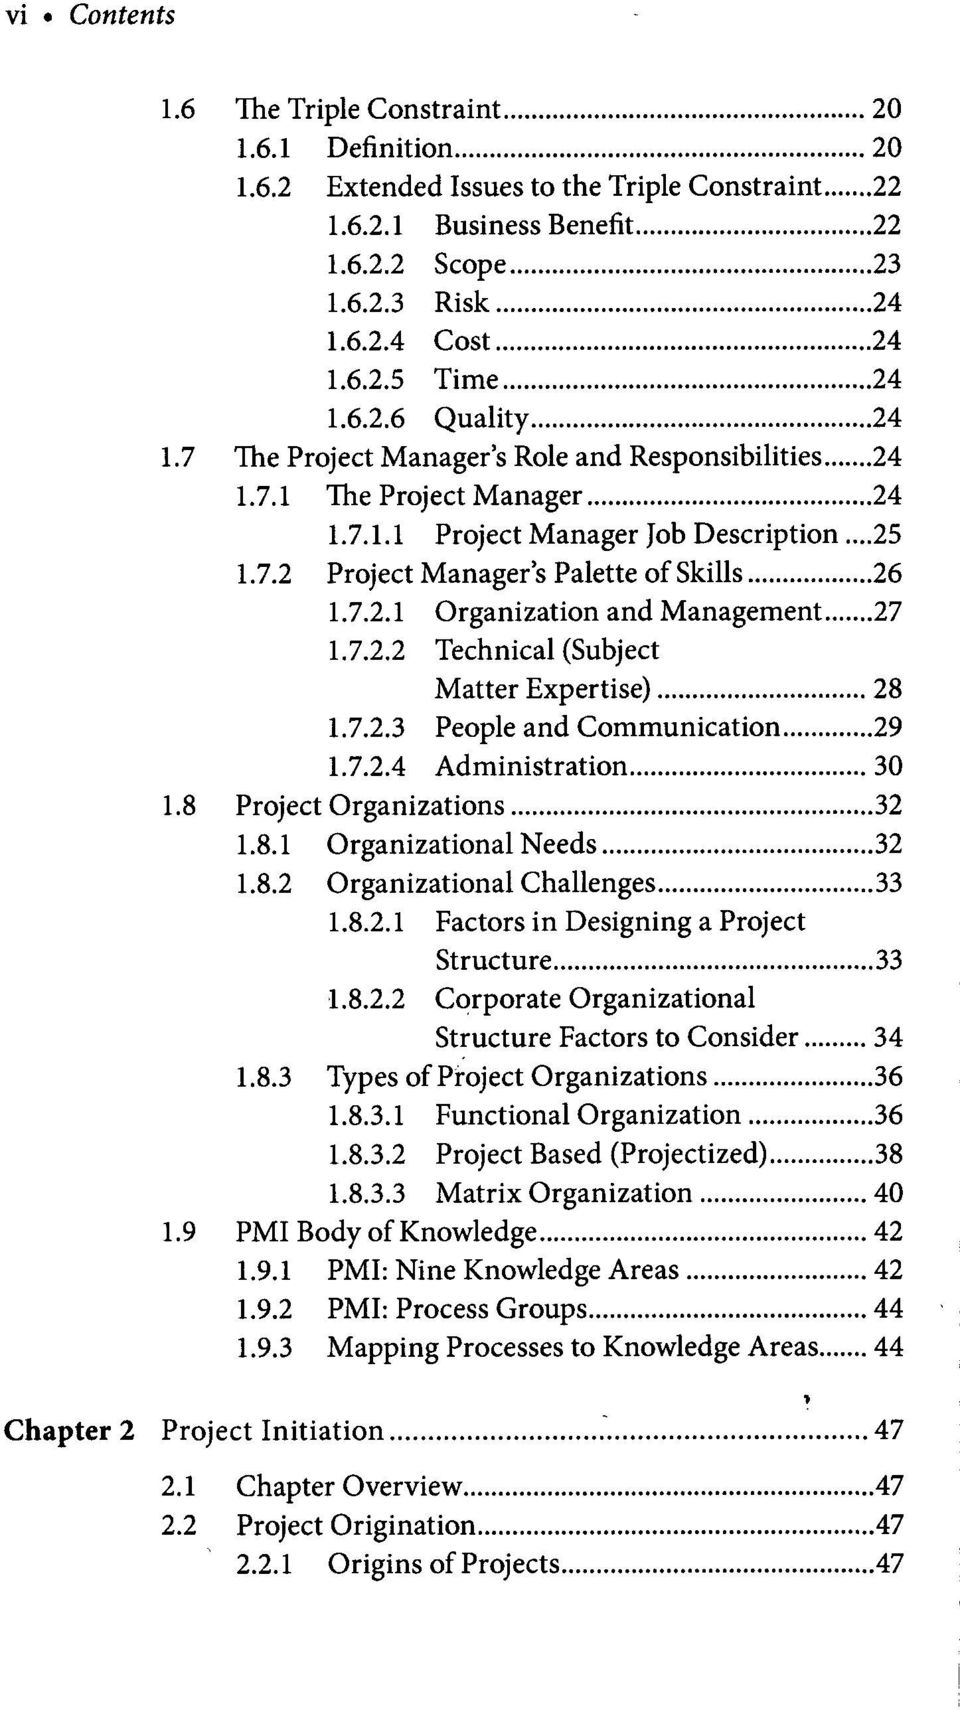 7.2.2 Technical (Subject Matter Expertise) 28 1.7.2.3 People and Communication 29 1.7.2.4 Administration 30 1.8 Project Organizations 32 1.8.1 Organizational Needs 32 1.8.2 Organizational Challenges 33 1.